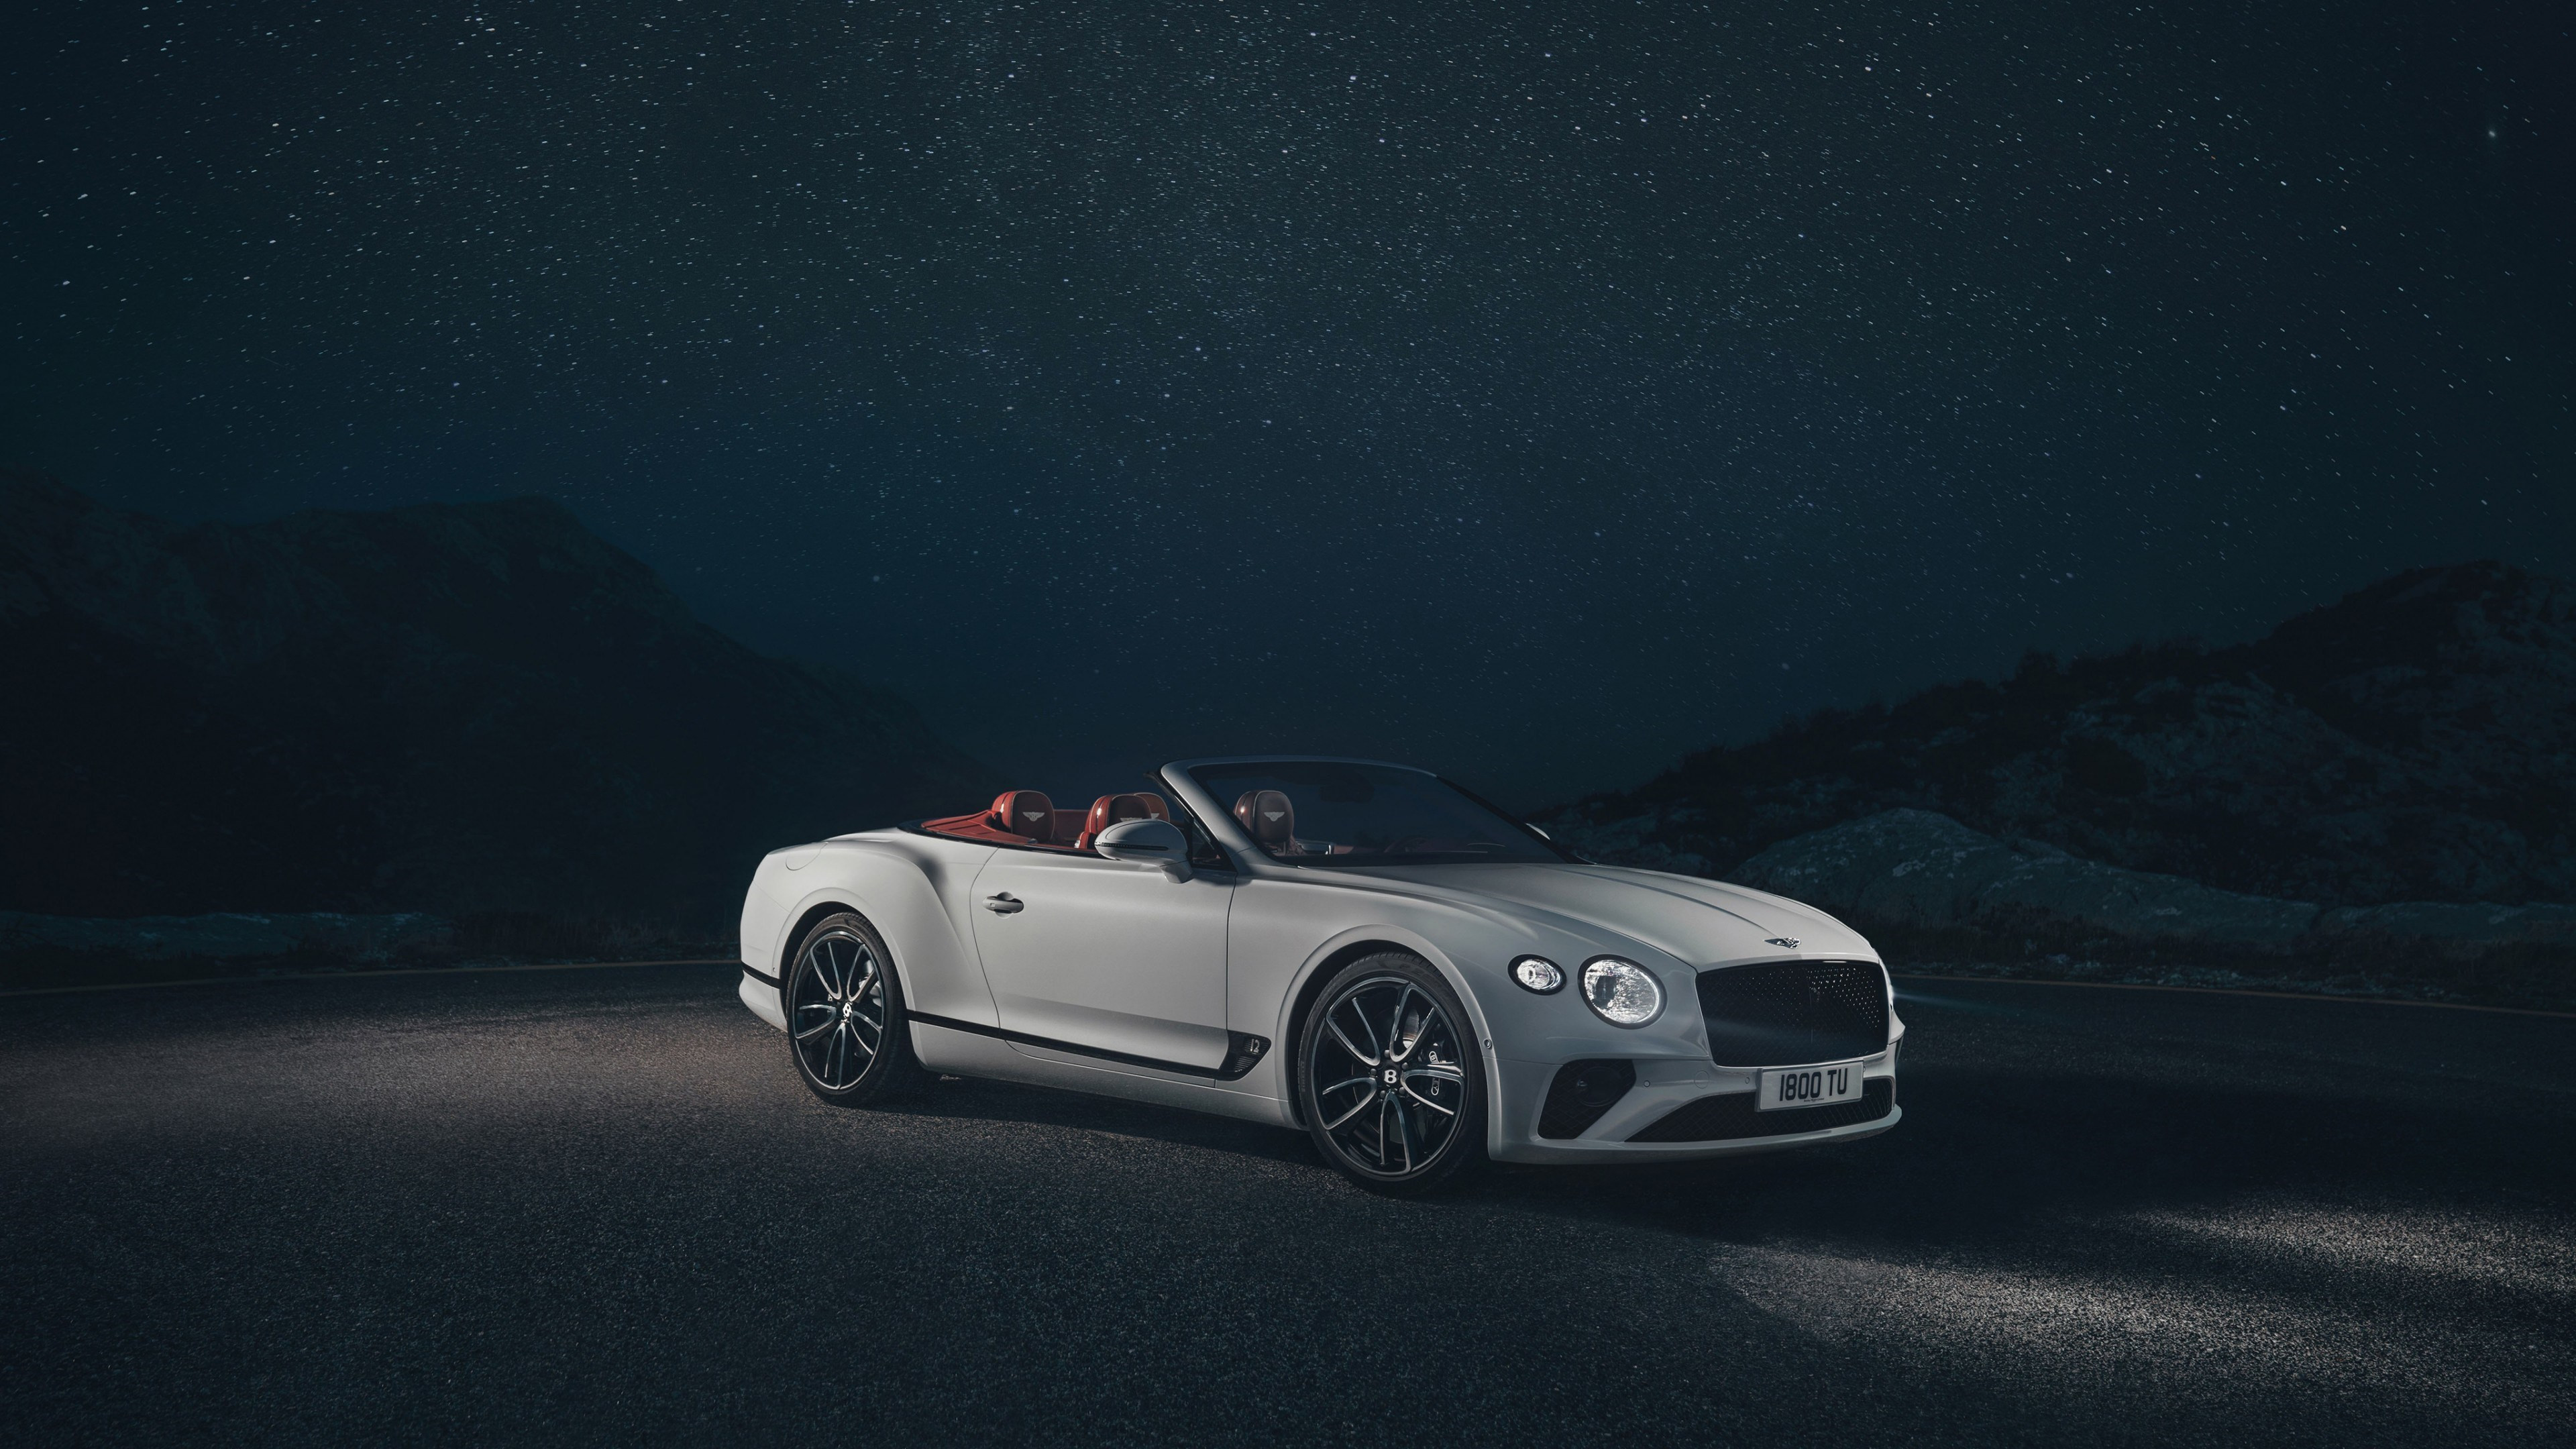 Bentley Continental GT wallpaper 3840x2160